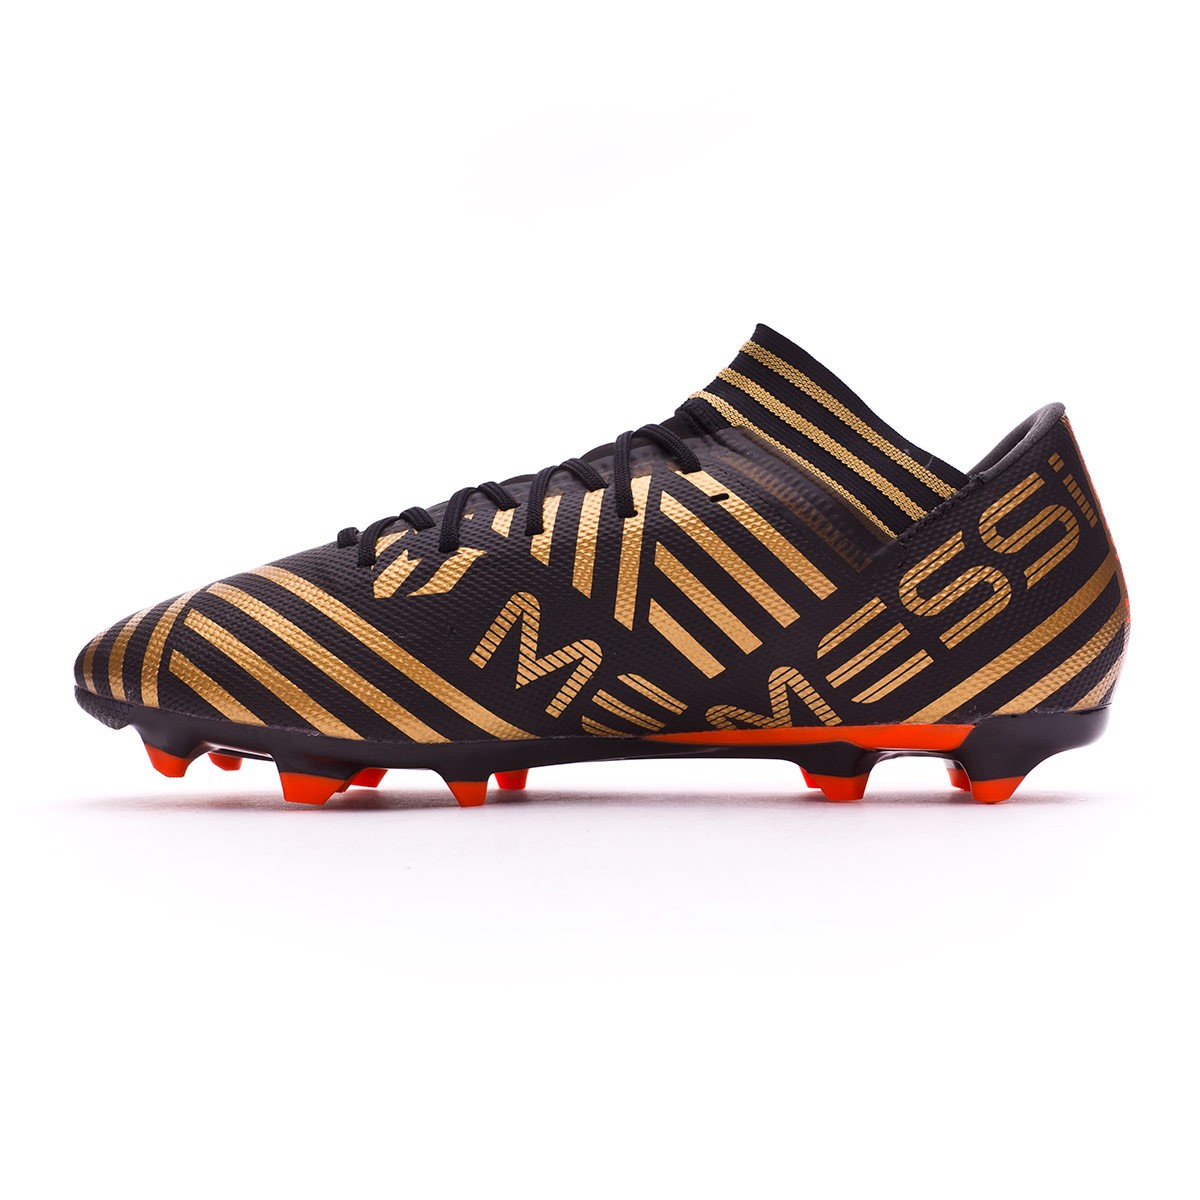 0fd2581f1d327e Boot adidas Nemeziz Messi 17.3 FG Core black-Solar red-Tactile gold  metallic - Football store Fútbol Emotion